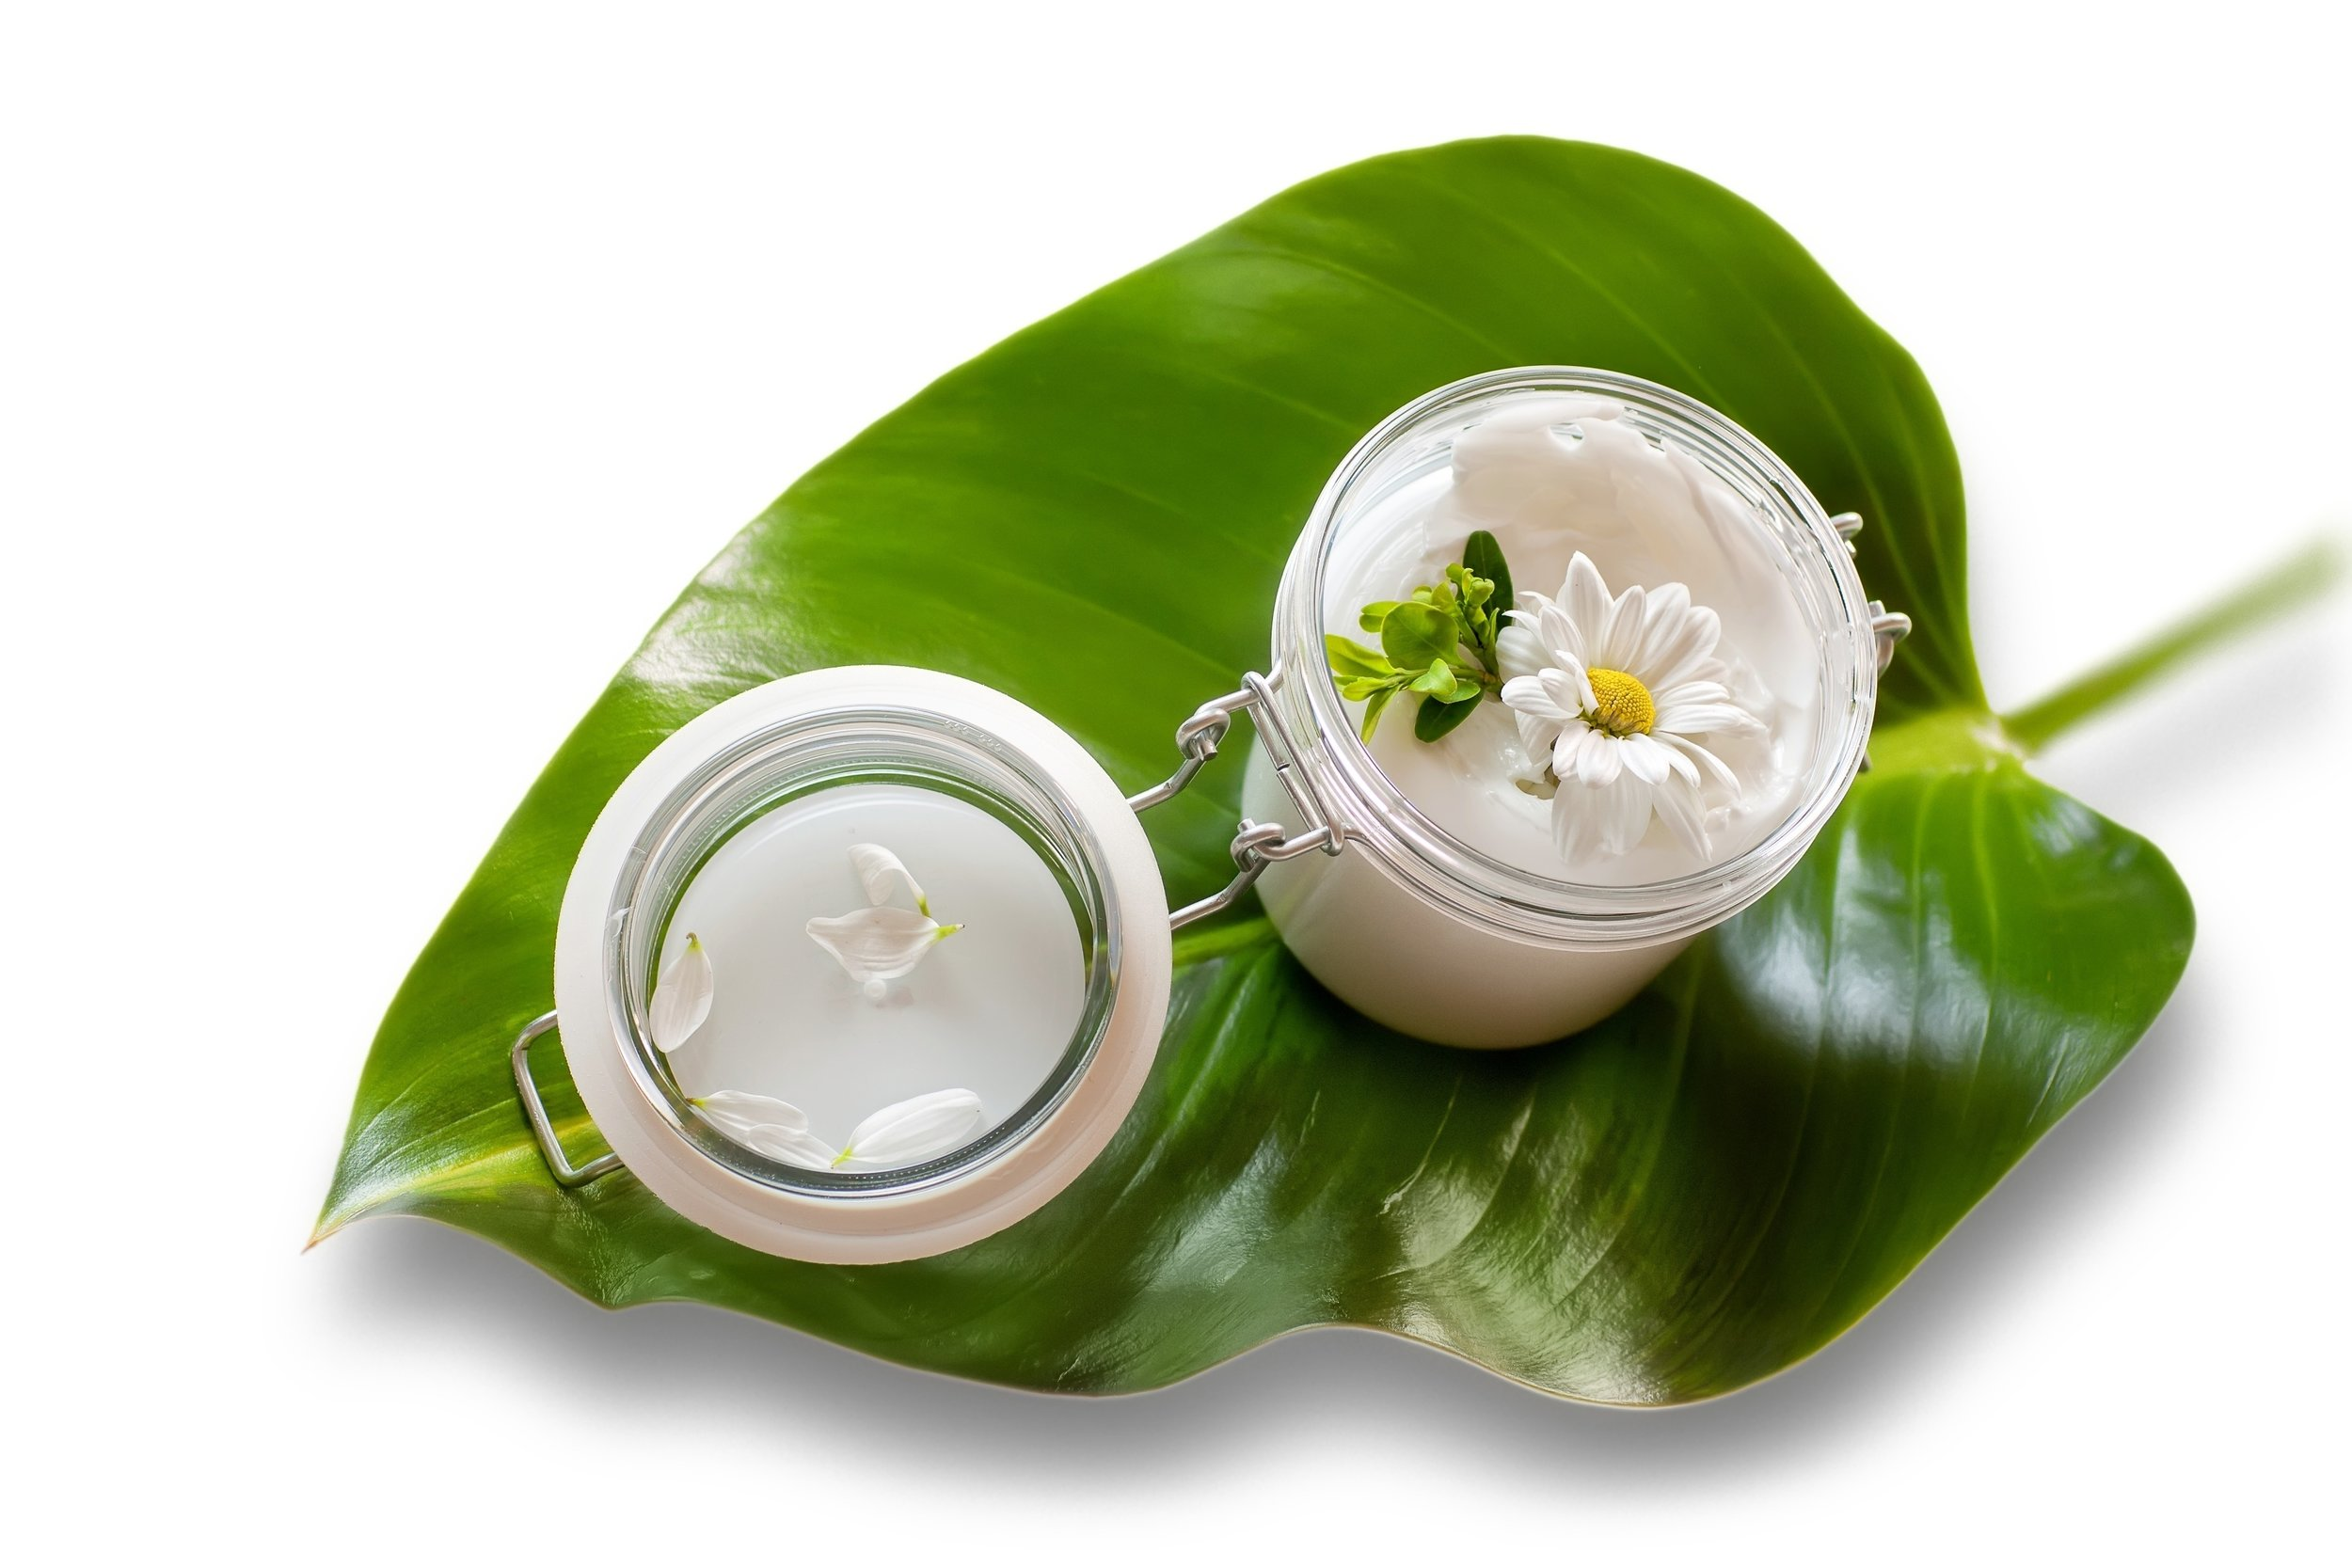 bigstock-Jar-of-moisturizing-facial-cre-26481329.jpg